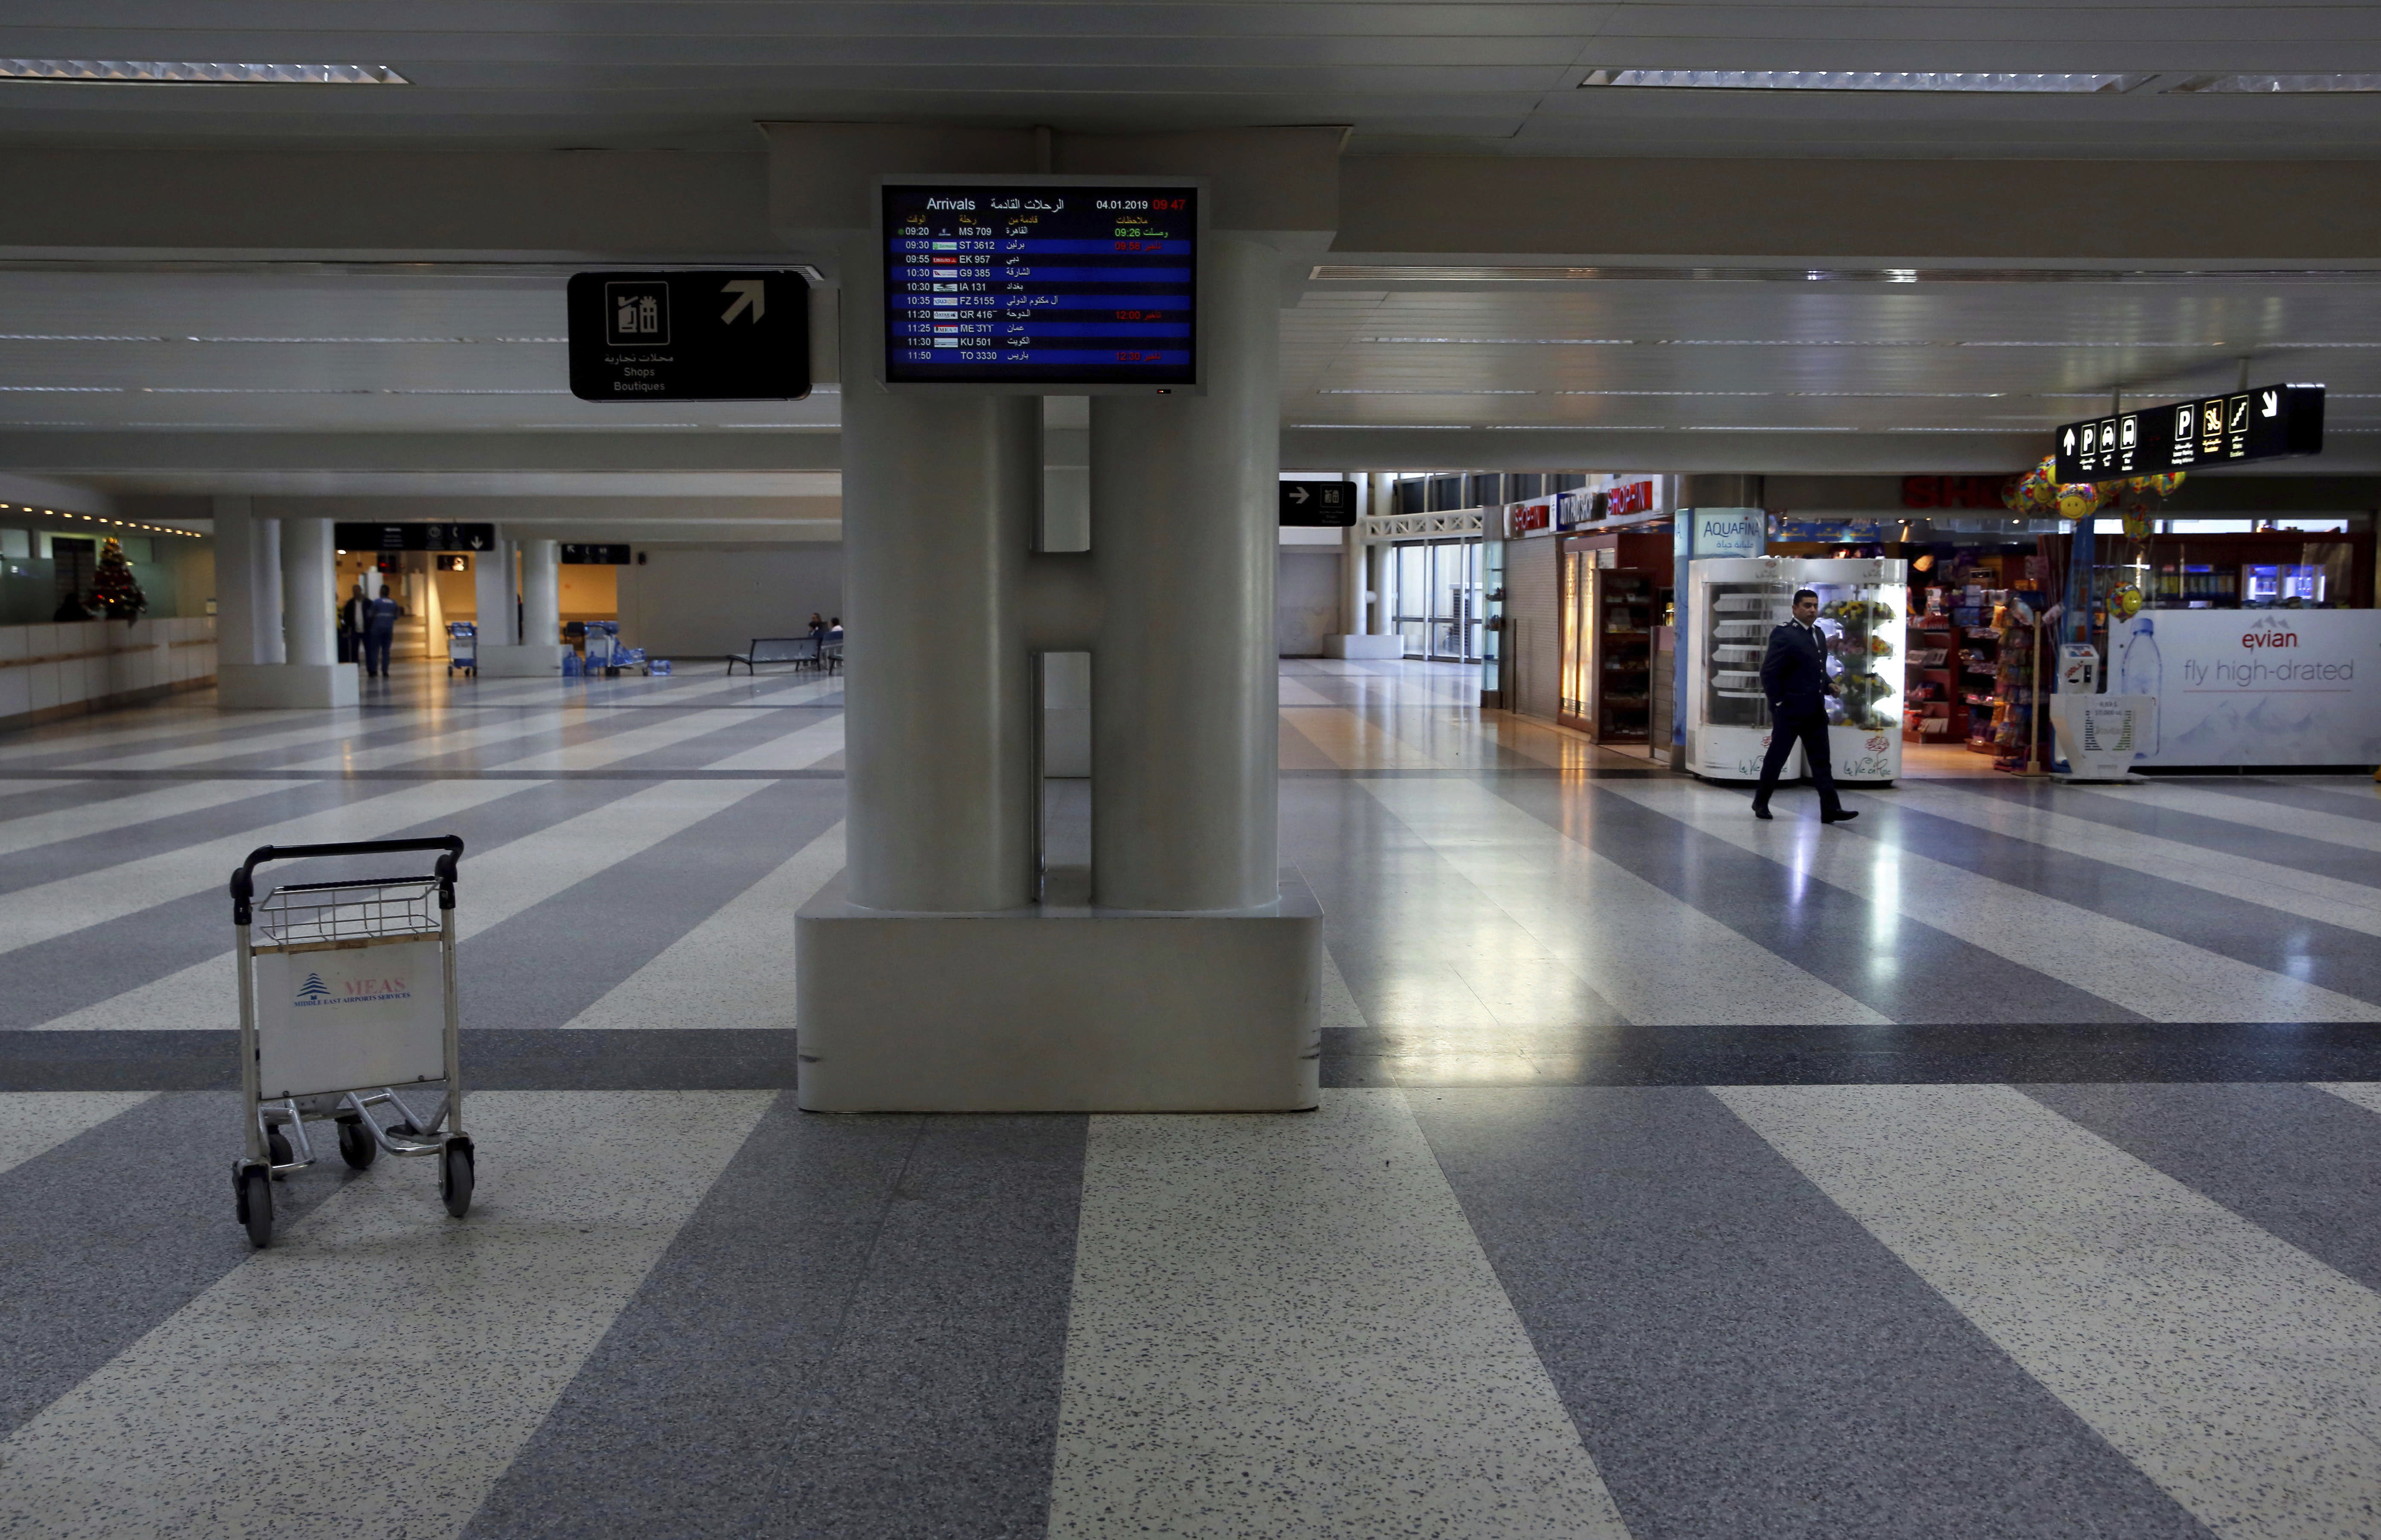 An officer walks through the almost empty arrival hall of the Rafik Hariri International Airport during a strike in Beirut, Lebanon, Friday, Jan. 4, 2019. Parts of Lebanon's public and private sectors have gone into a strike called for by the country's labor unions to protest worsening economic conditions and months of delays in the formation of a new government. (AP Photo/Bilal Hussein)